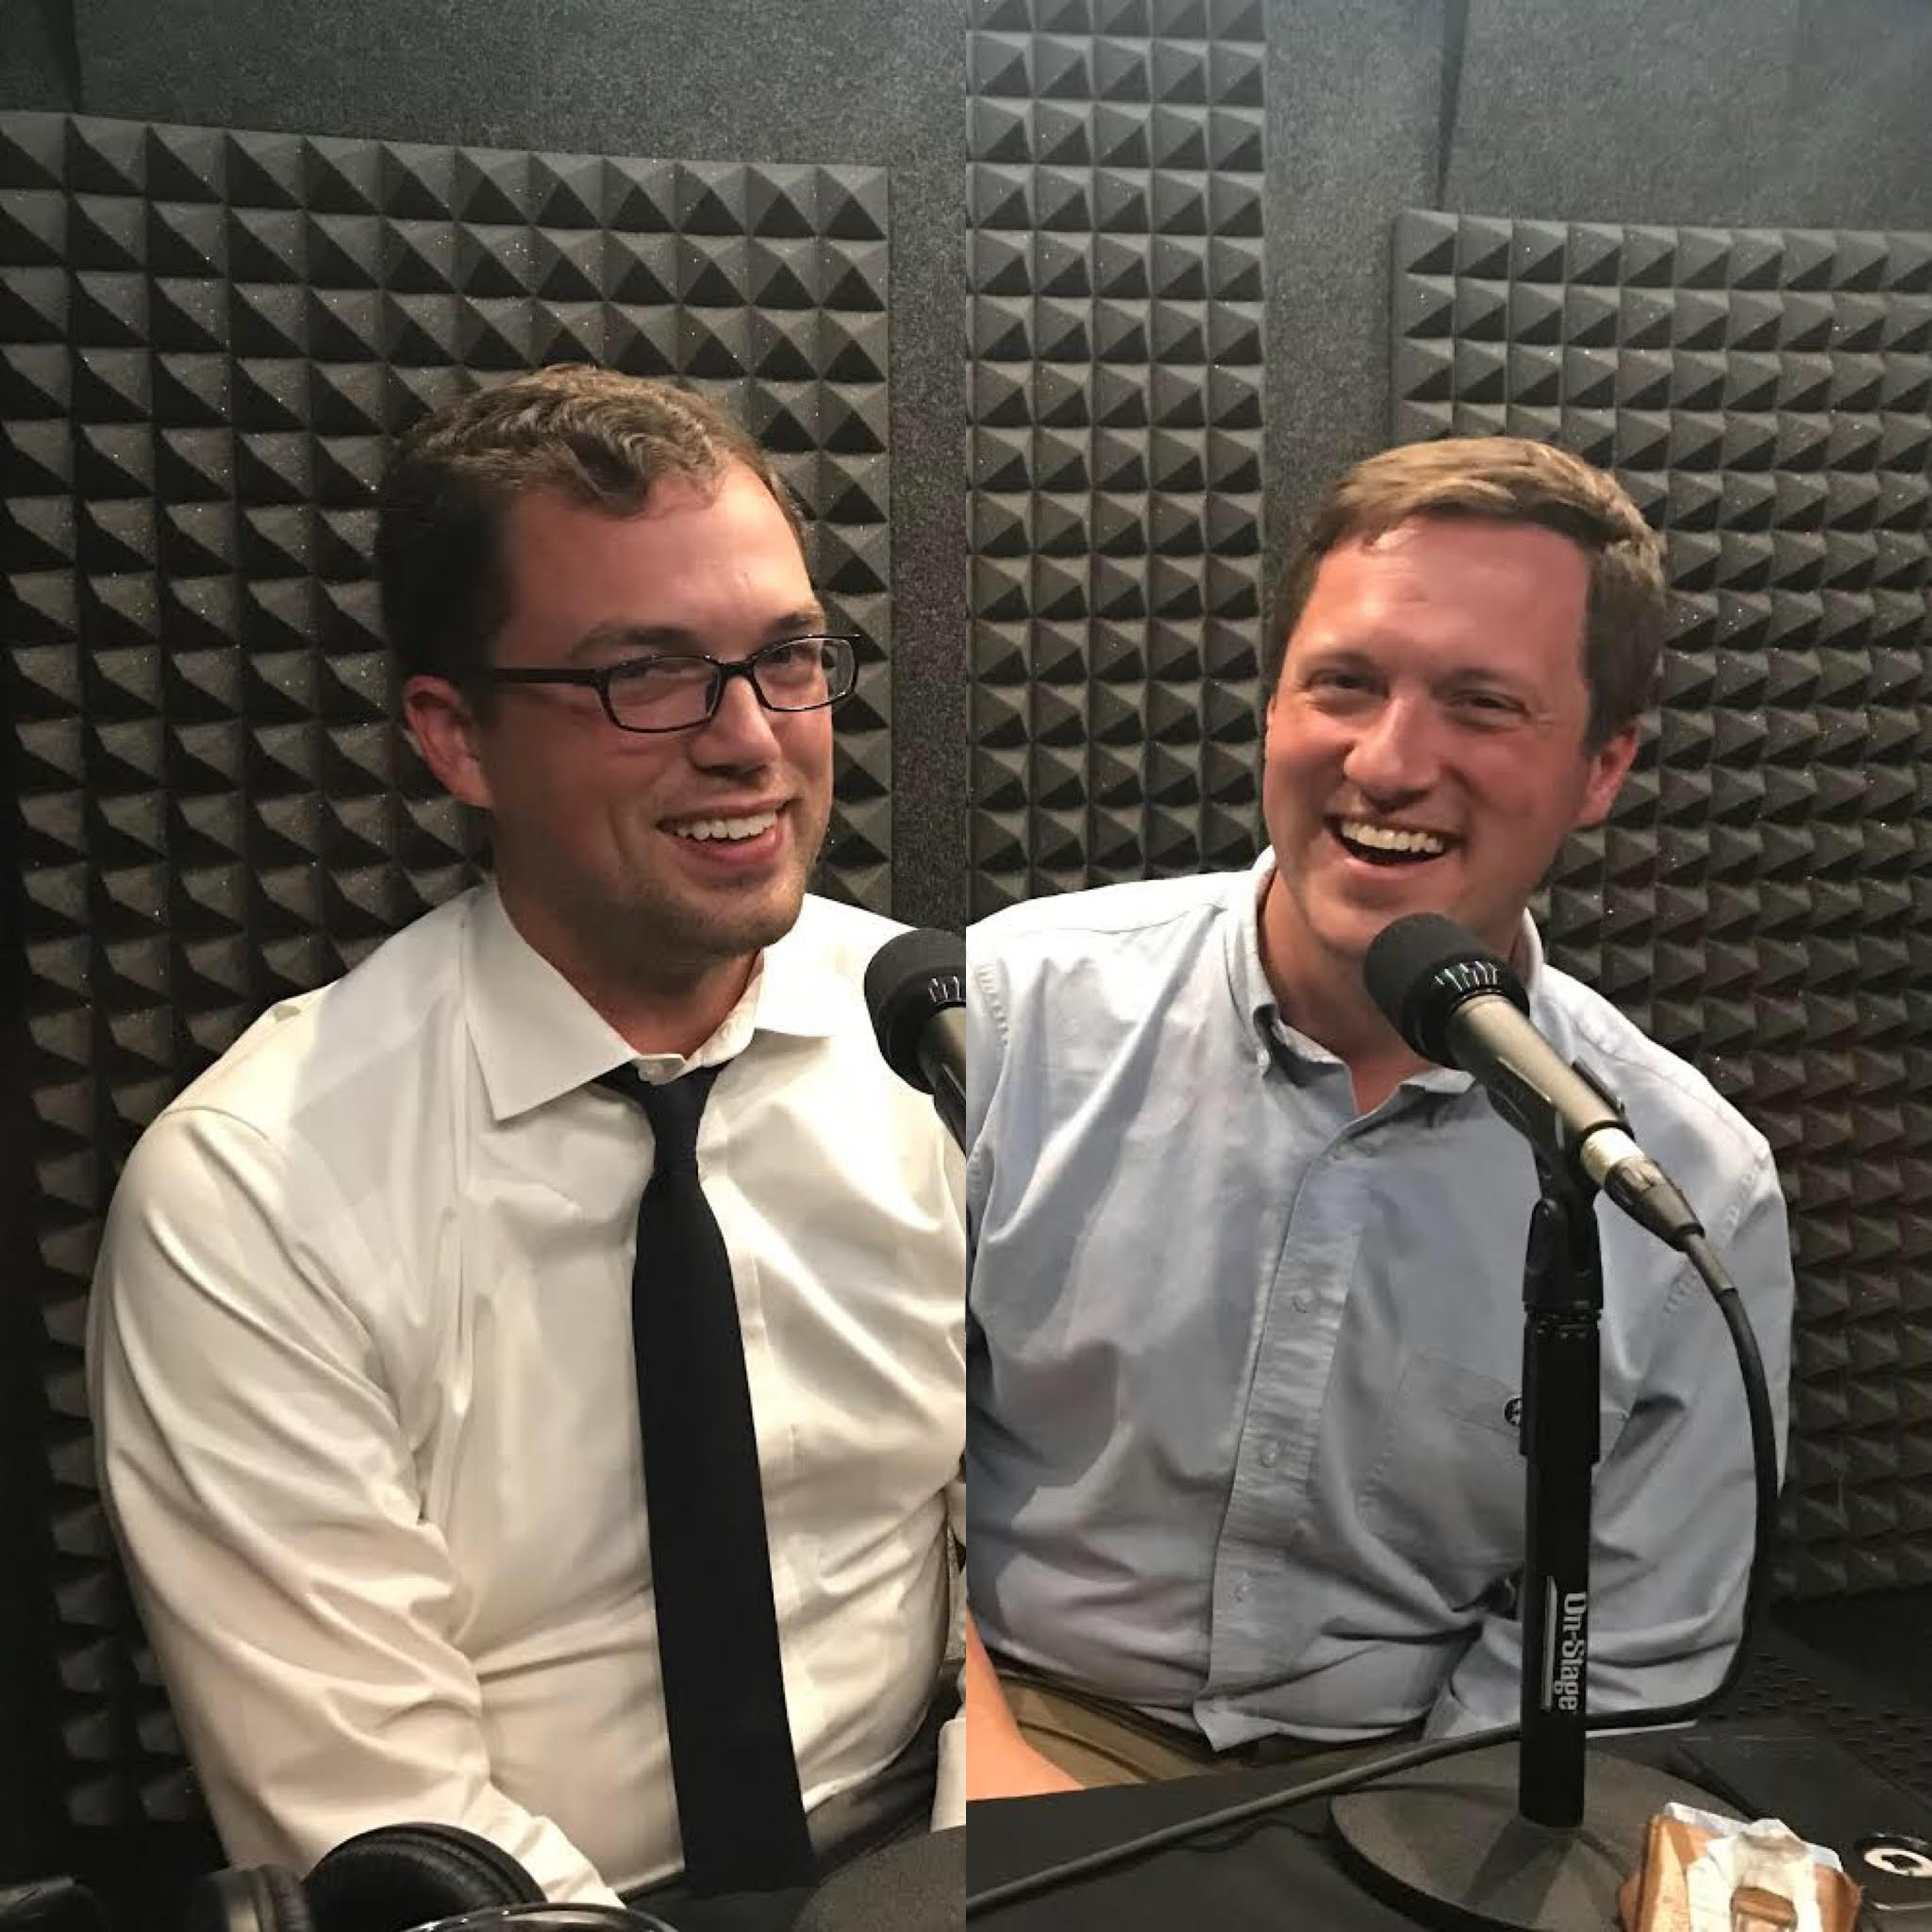 Guests: - Kyle Southern (left) and Joseph Williams (right) …in the photo and politically